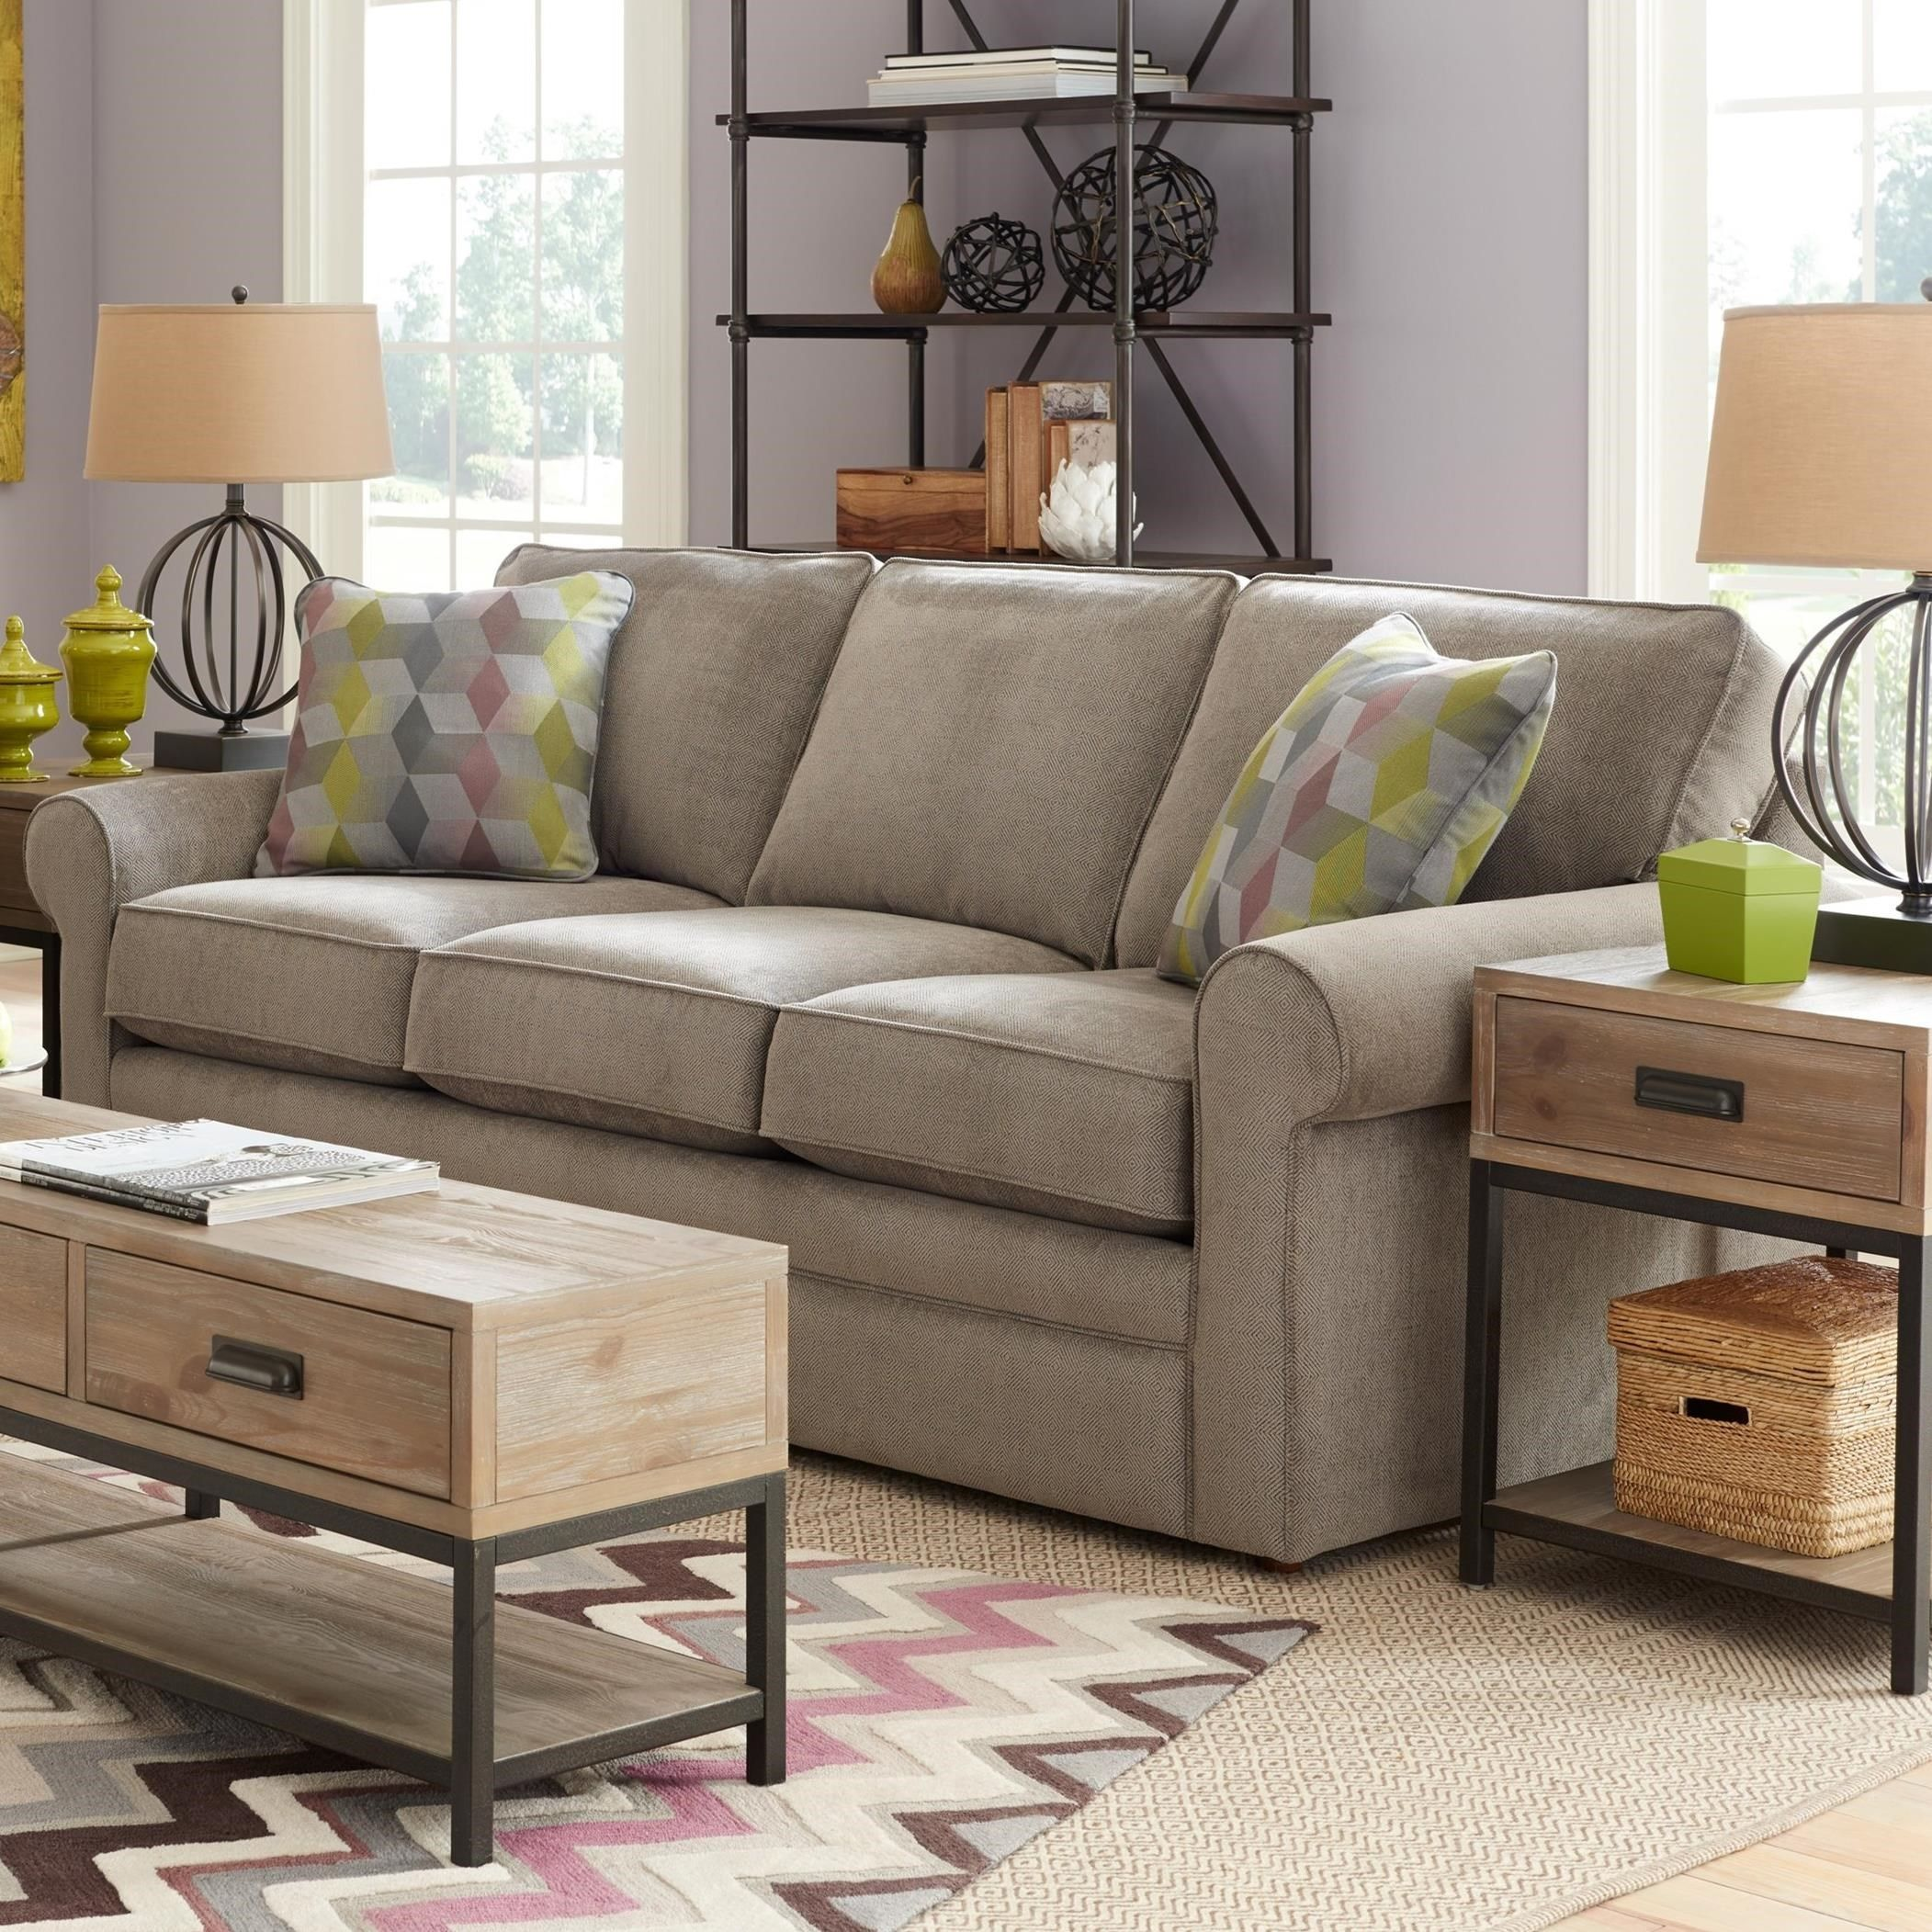 Pin By Meggie On Home Decor Collins Sofa Sectional Couch Cover Living Room Furniture Sofas #rotmans #living #room #sets